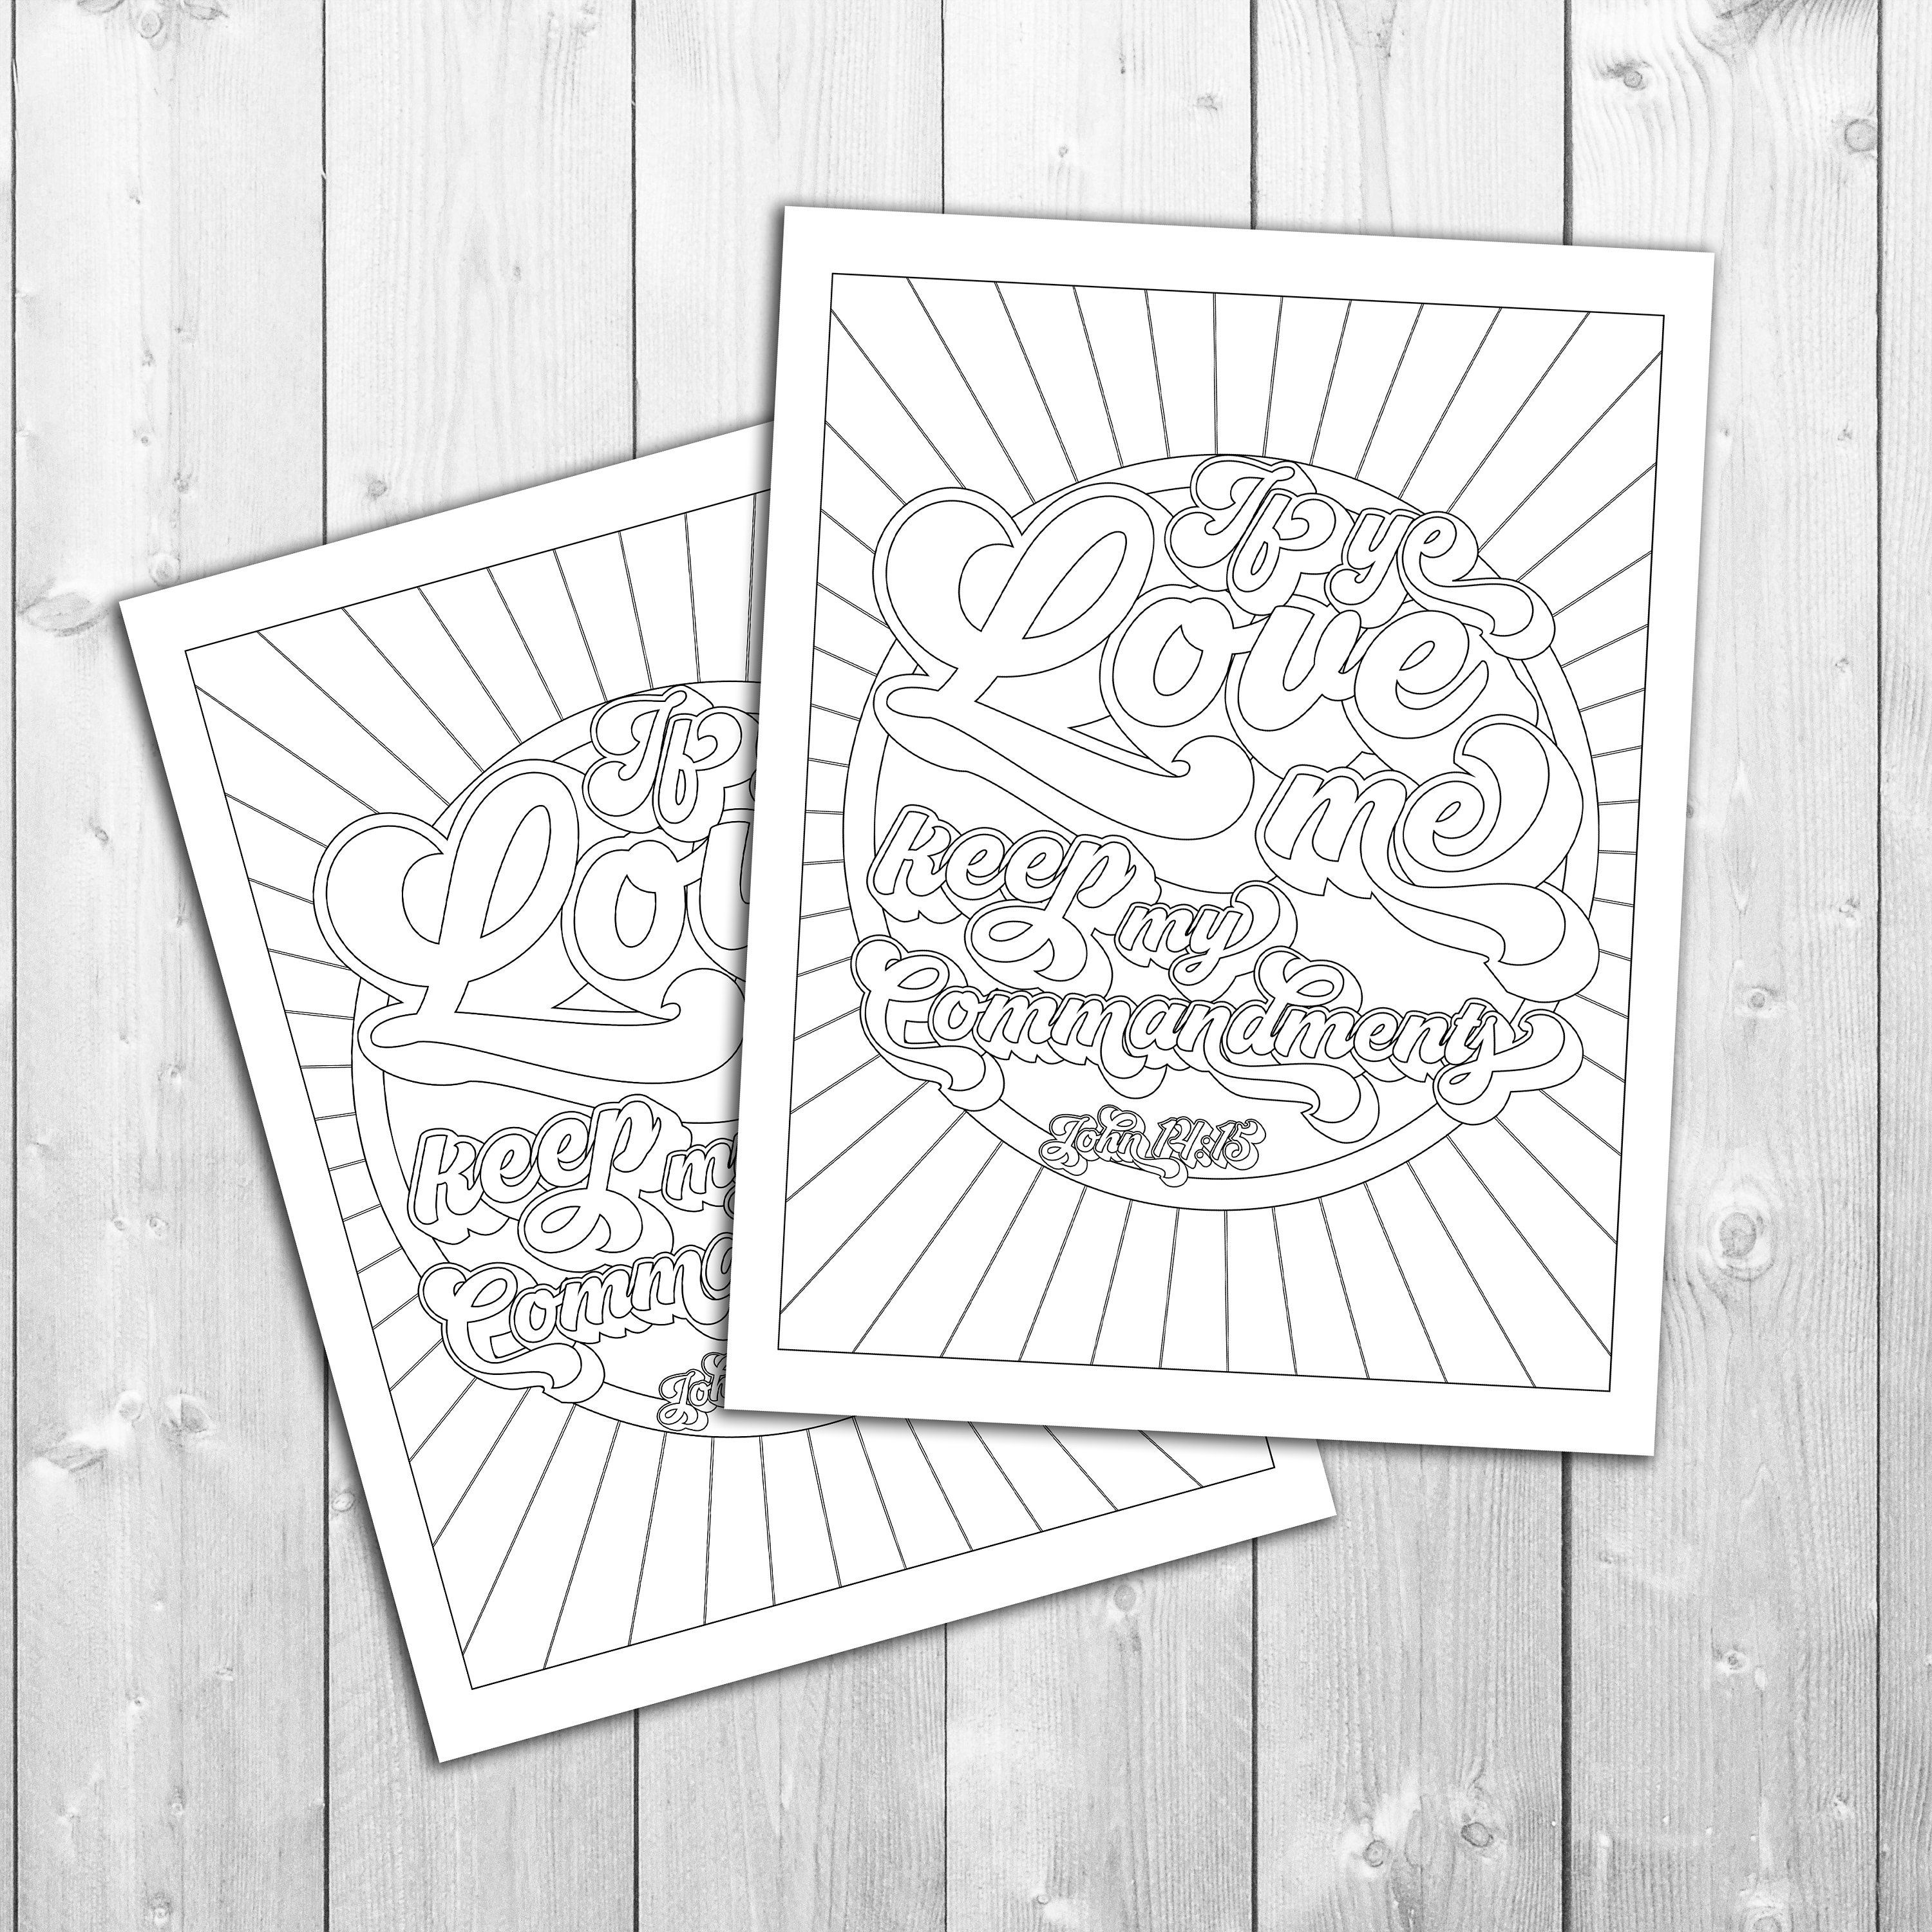 2019 Youth Theme If Ye Love Me Keep My Commandments Coloring Page Vector File Svg Mormon Lds Lesson Handout Young Youth Theme If Ye Love Me Coloring Pages